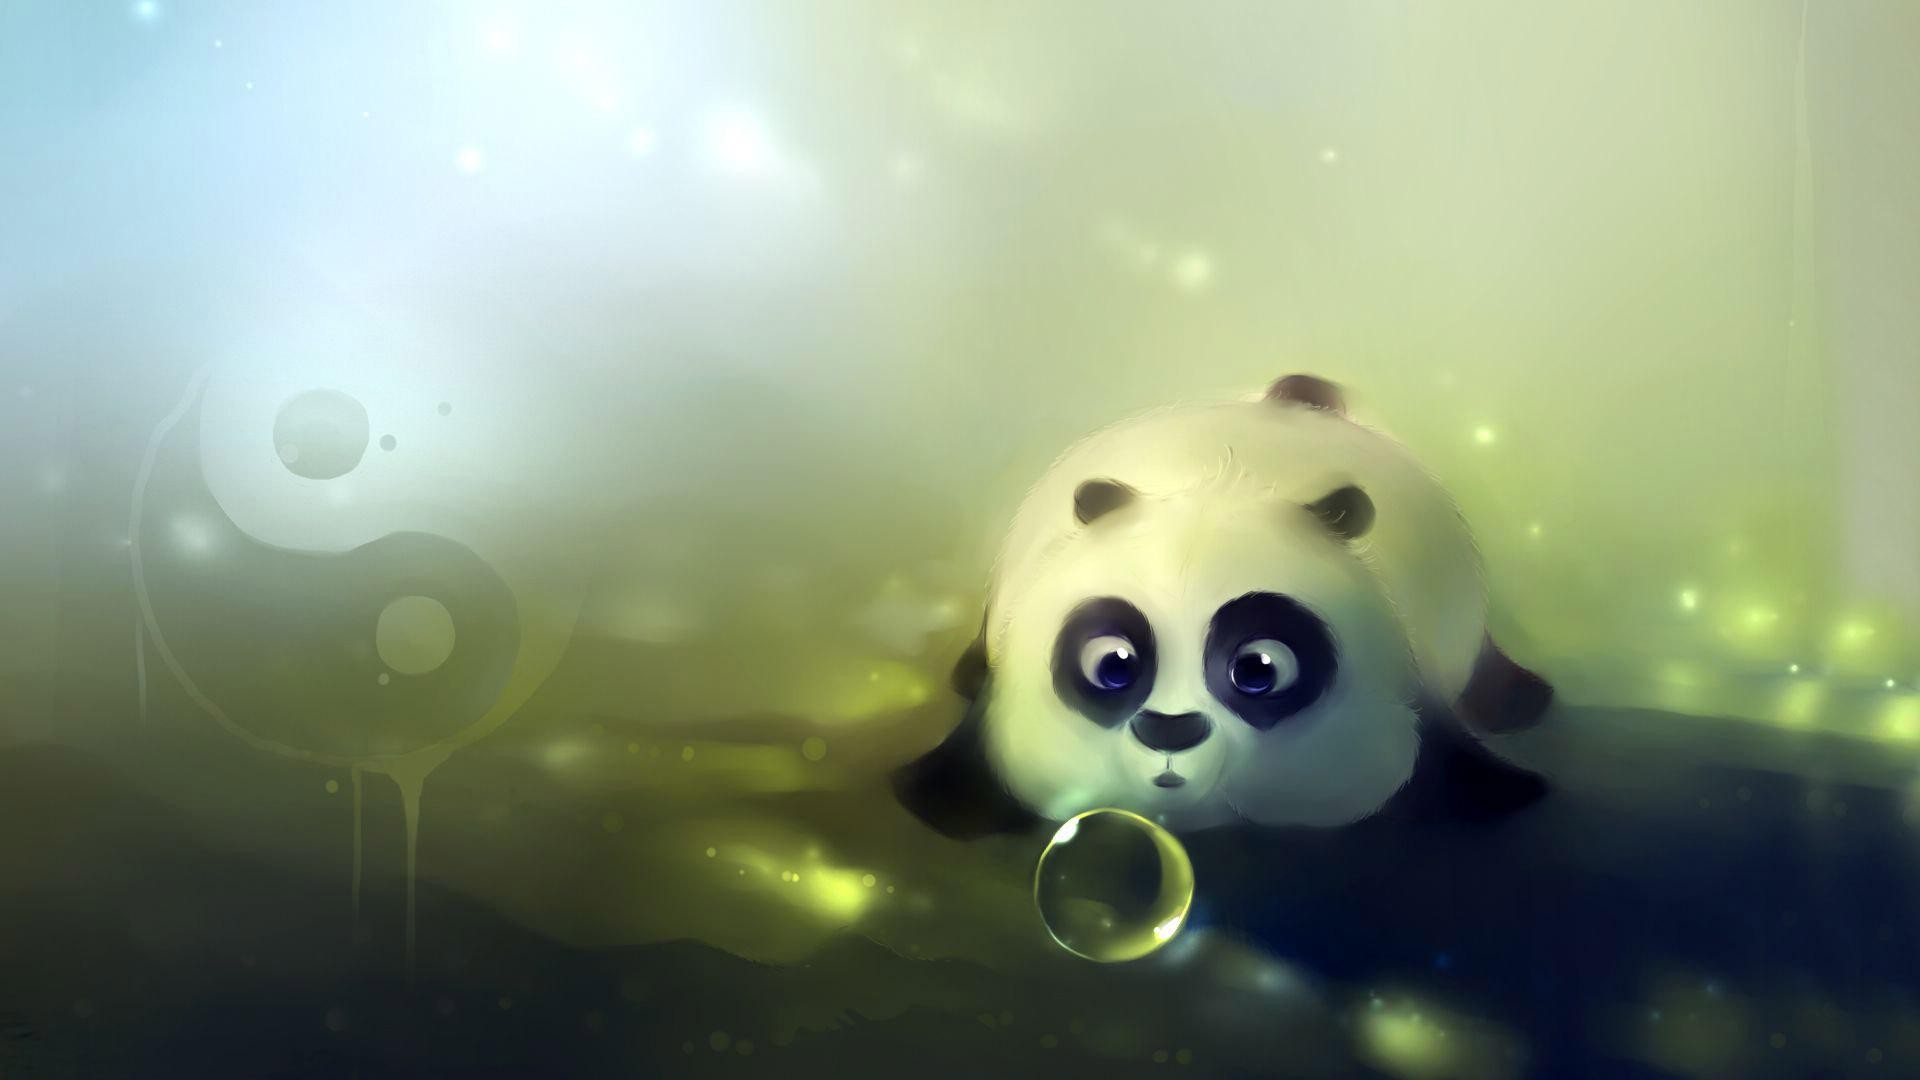 wallpaper cute ·① download free awesome hd backgrounds for desktop